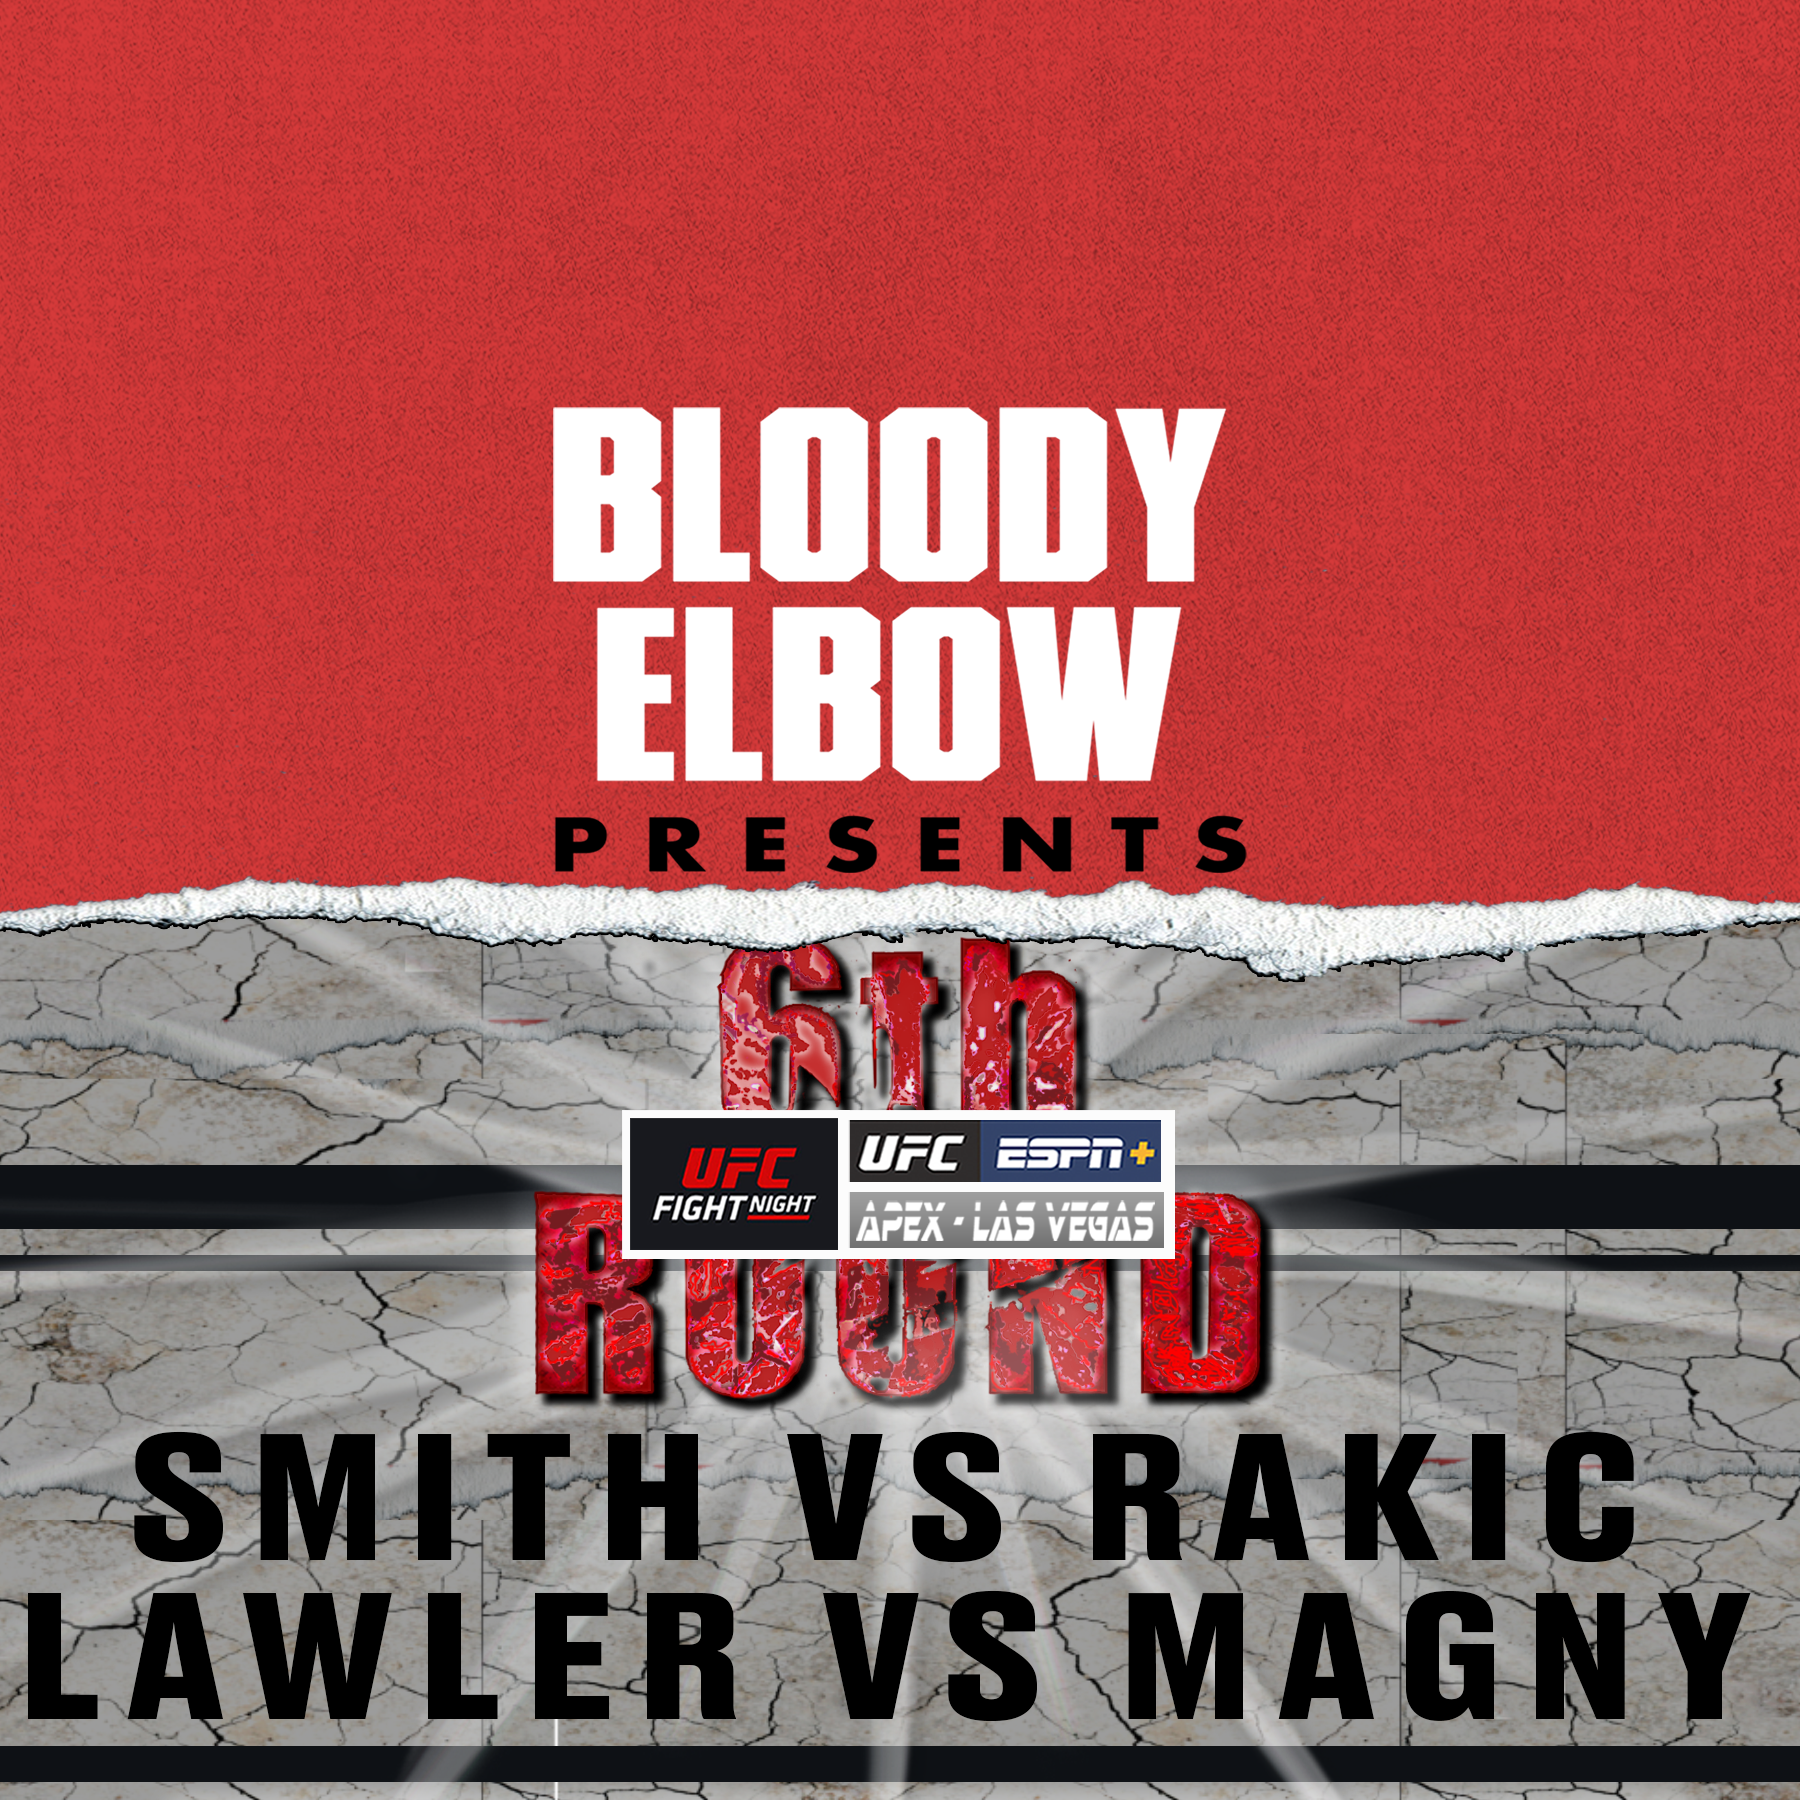 6th Rd, The 6th Round Post-Fight Show, UFC Vegas 8, UFC Results, UFC Analysis, UFC Reactions, UFC hot takes, Smith vs Rakic, Lawler vs Magny